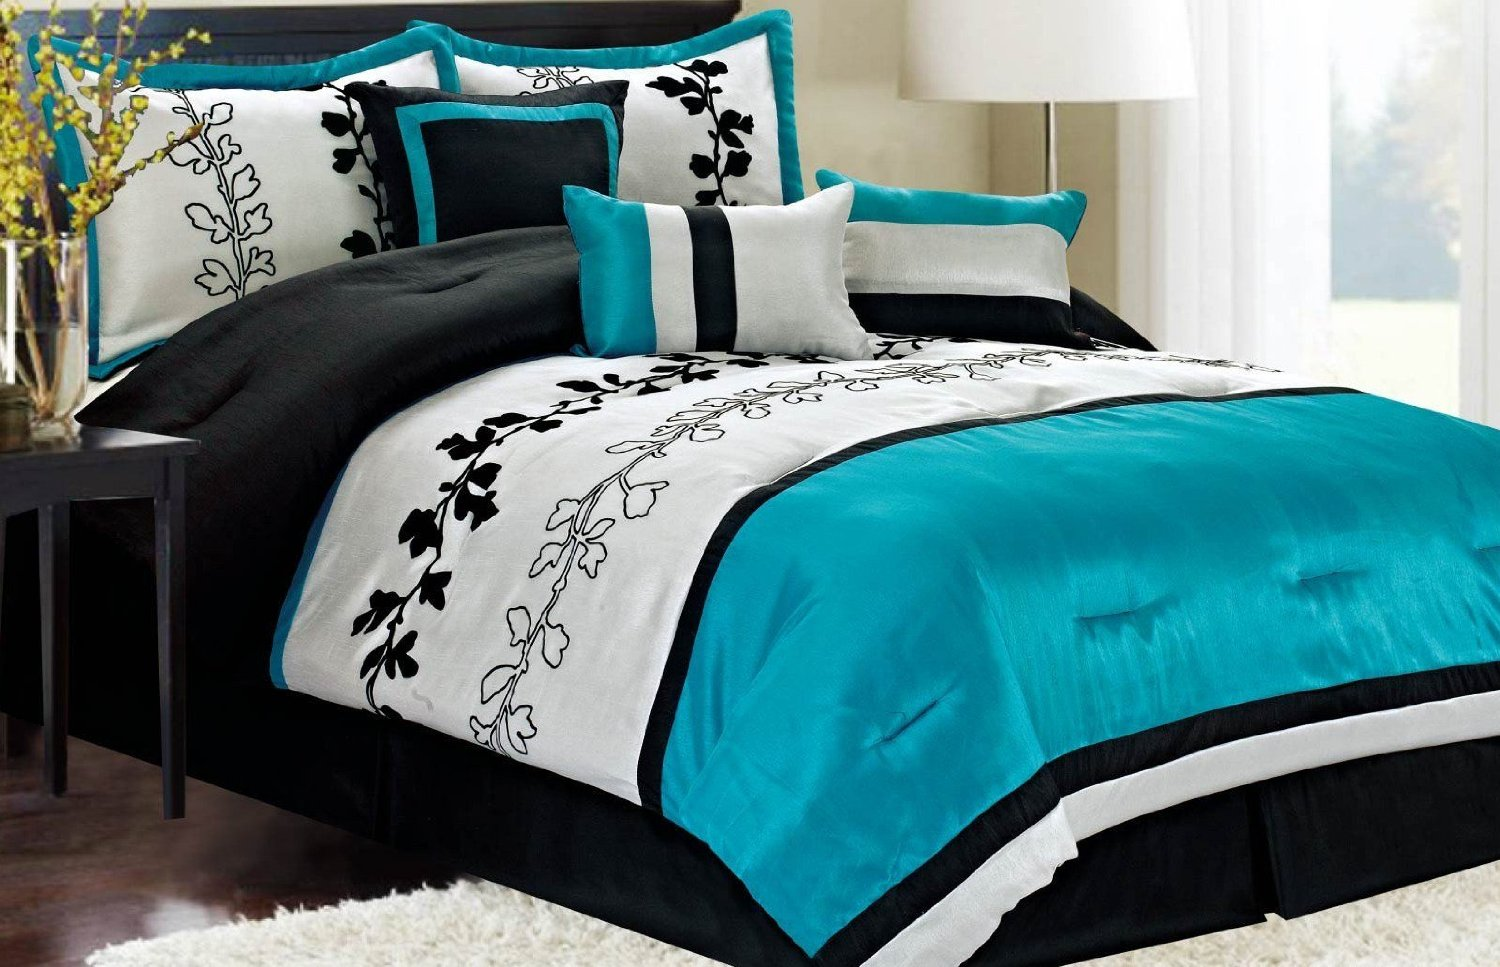 Turquoise and black color scheme archives panda 39 s house Teal bedding sets